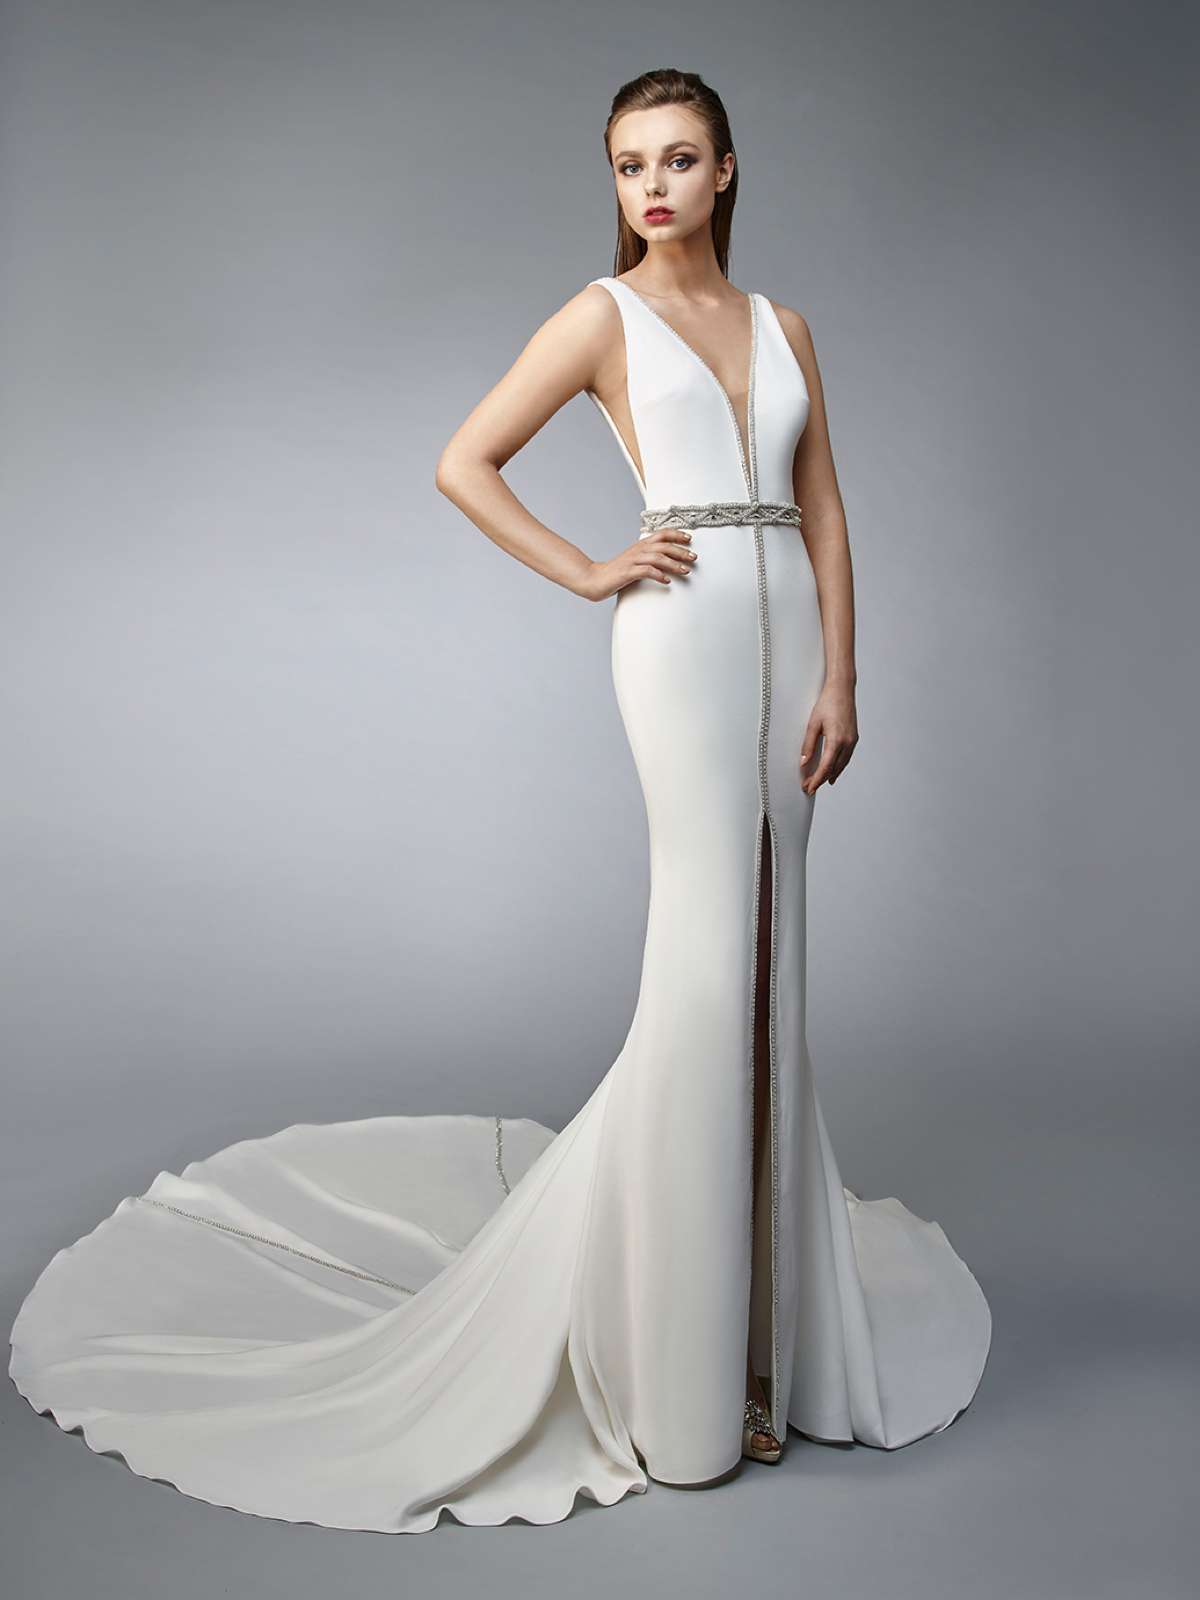 c696fec80f Norianna by Enzoani - Find Your Dream Dress